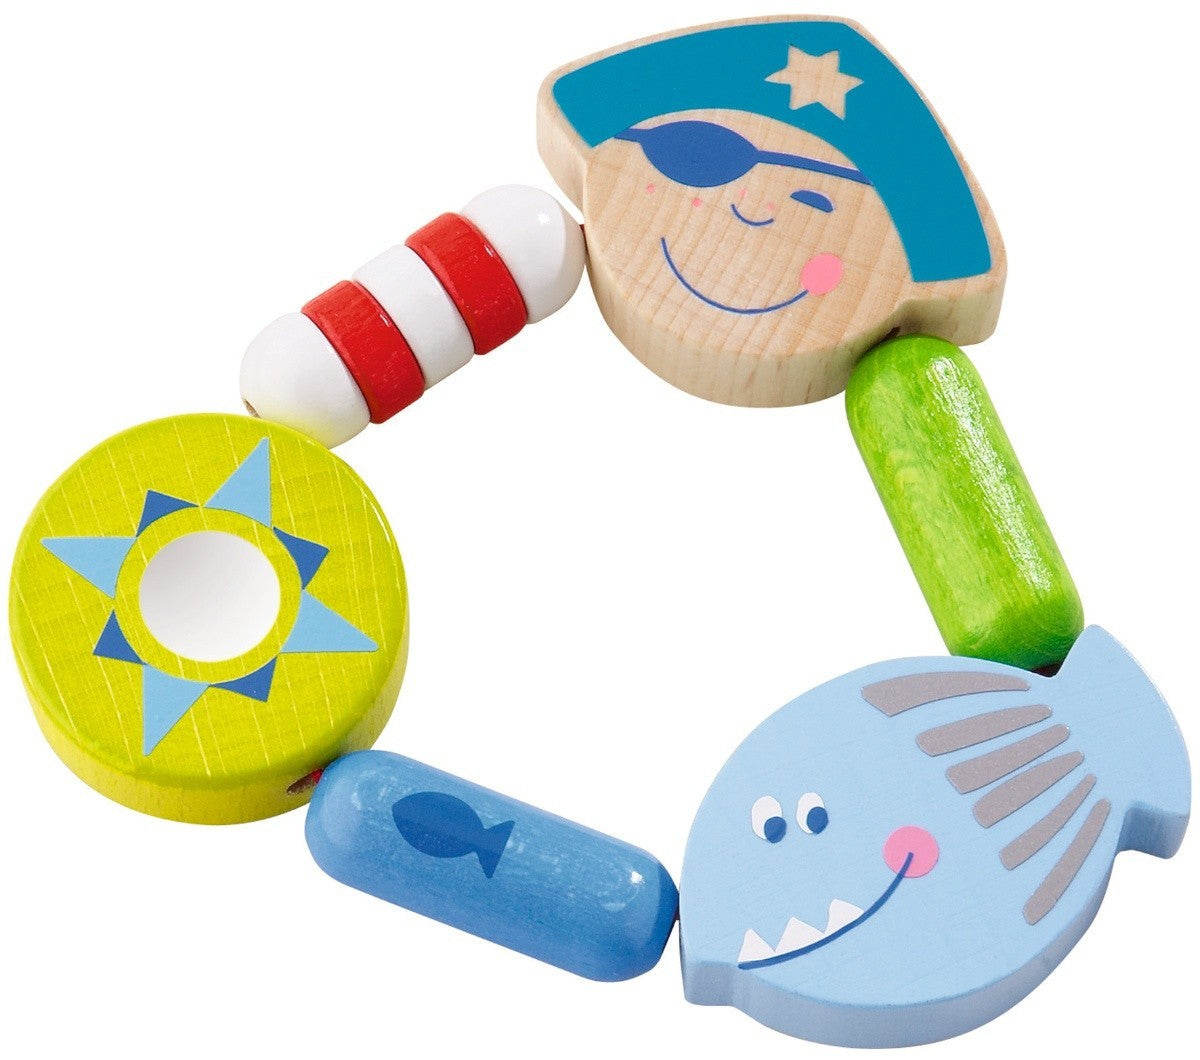 Haba Buccaneer Bill Cluthing Toy